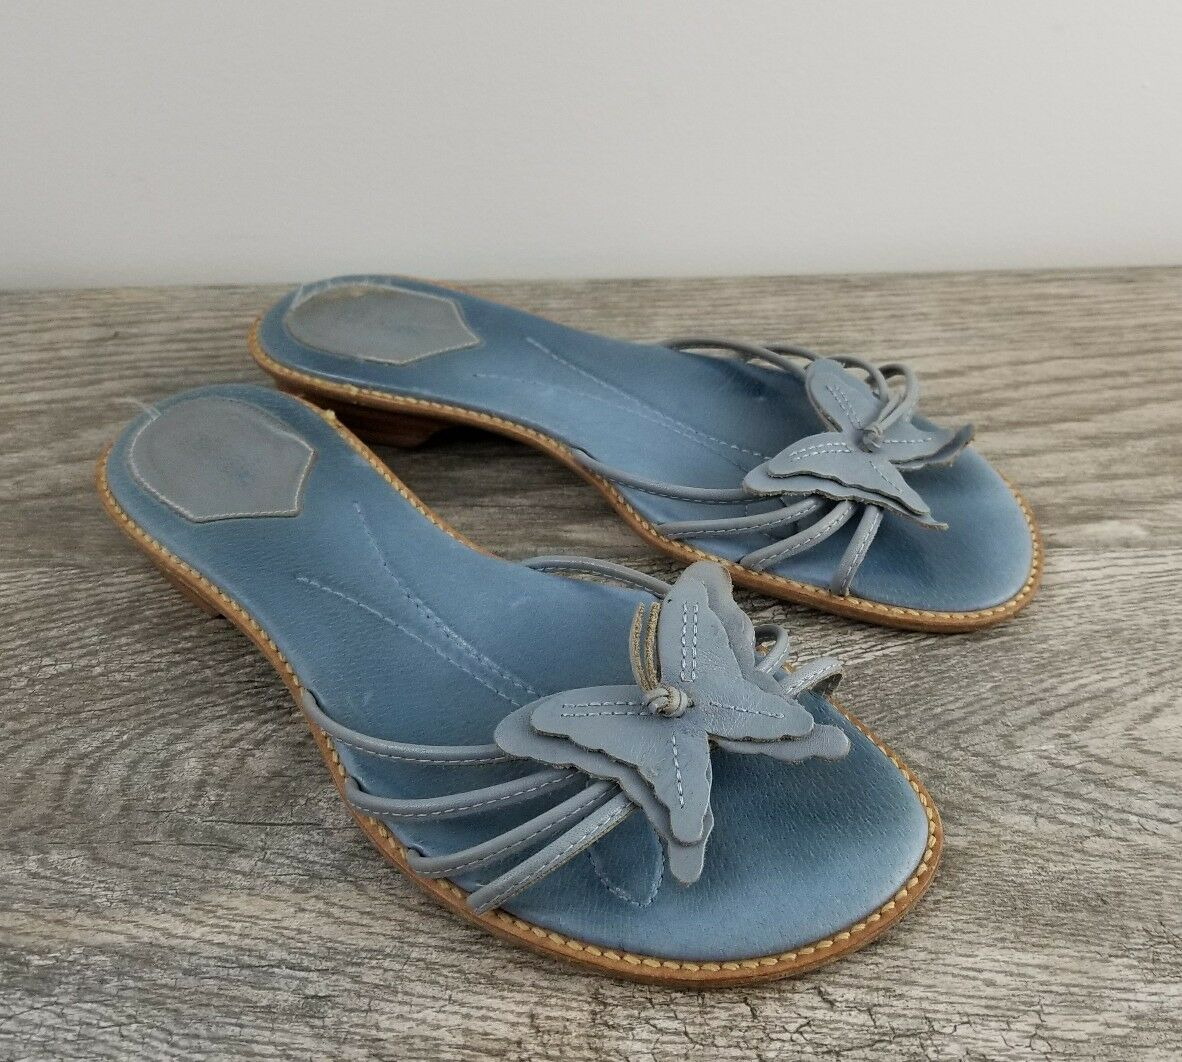 NICOLE Light Blue Leather 8, Butterfly Slides Sandals, Size 8, Leather VGUC, Cruise Ready! b8c25d